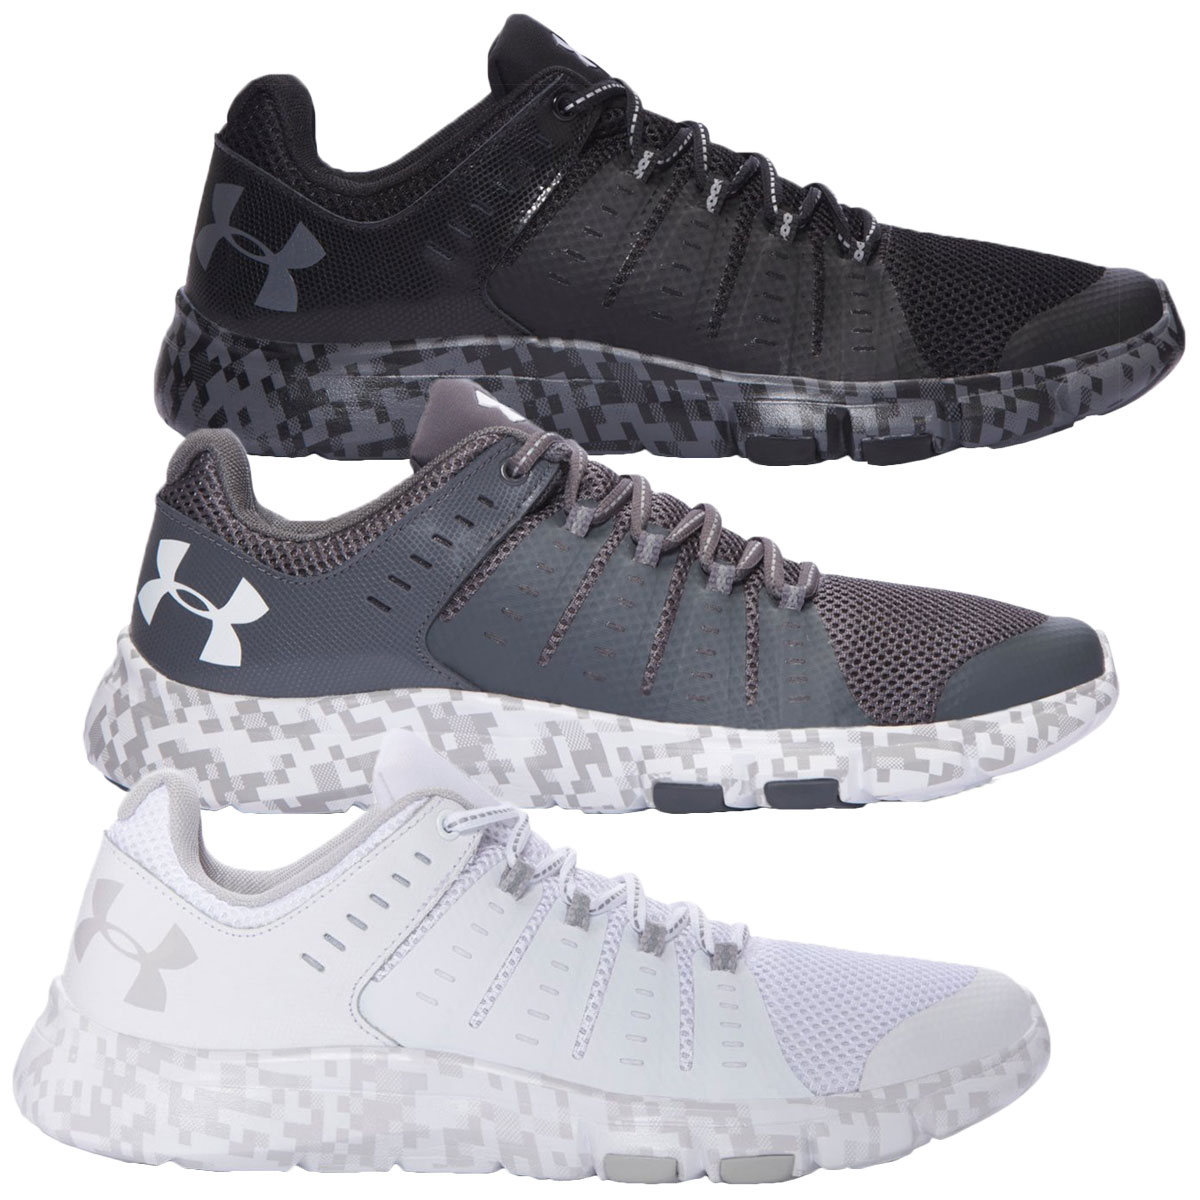 Details about Under Armour Mens UA Micro G Limitless TR 2 SE Trainers  Fitness Shoes - White f0db47bfc8e5